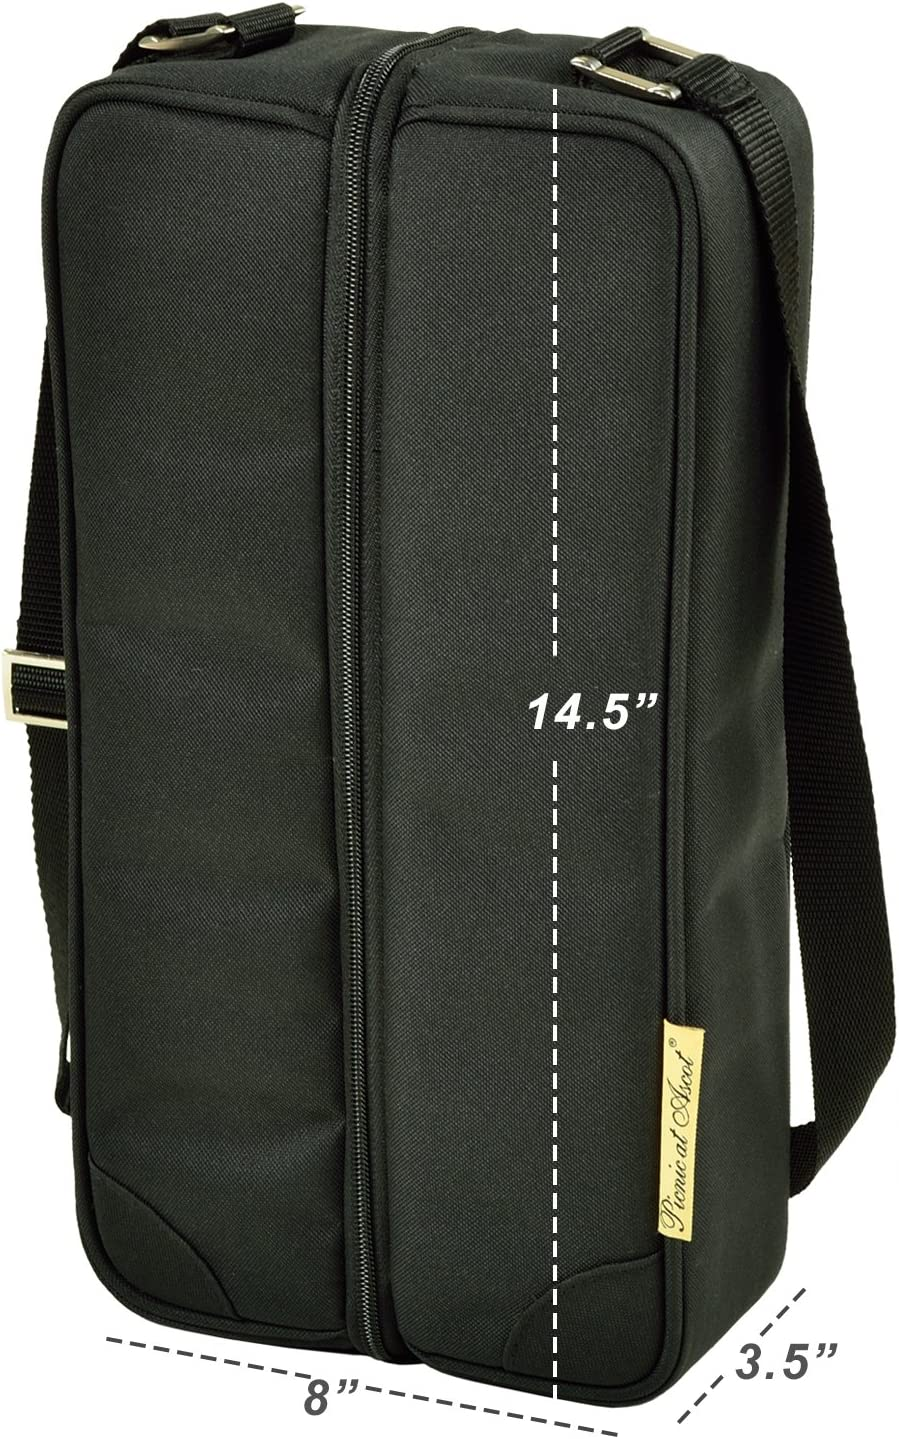 Napkins and Corkscrew Picnic at Ascot Insulated Wine Tote with 2 Wine Glasses Designed /& Assembled in the USA